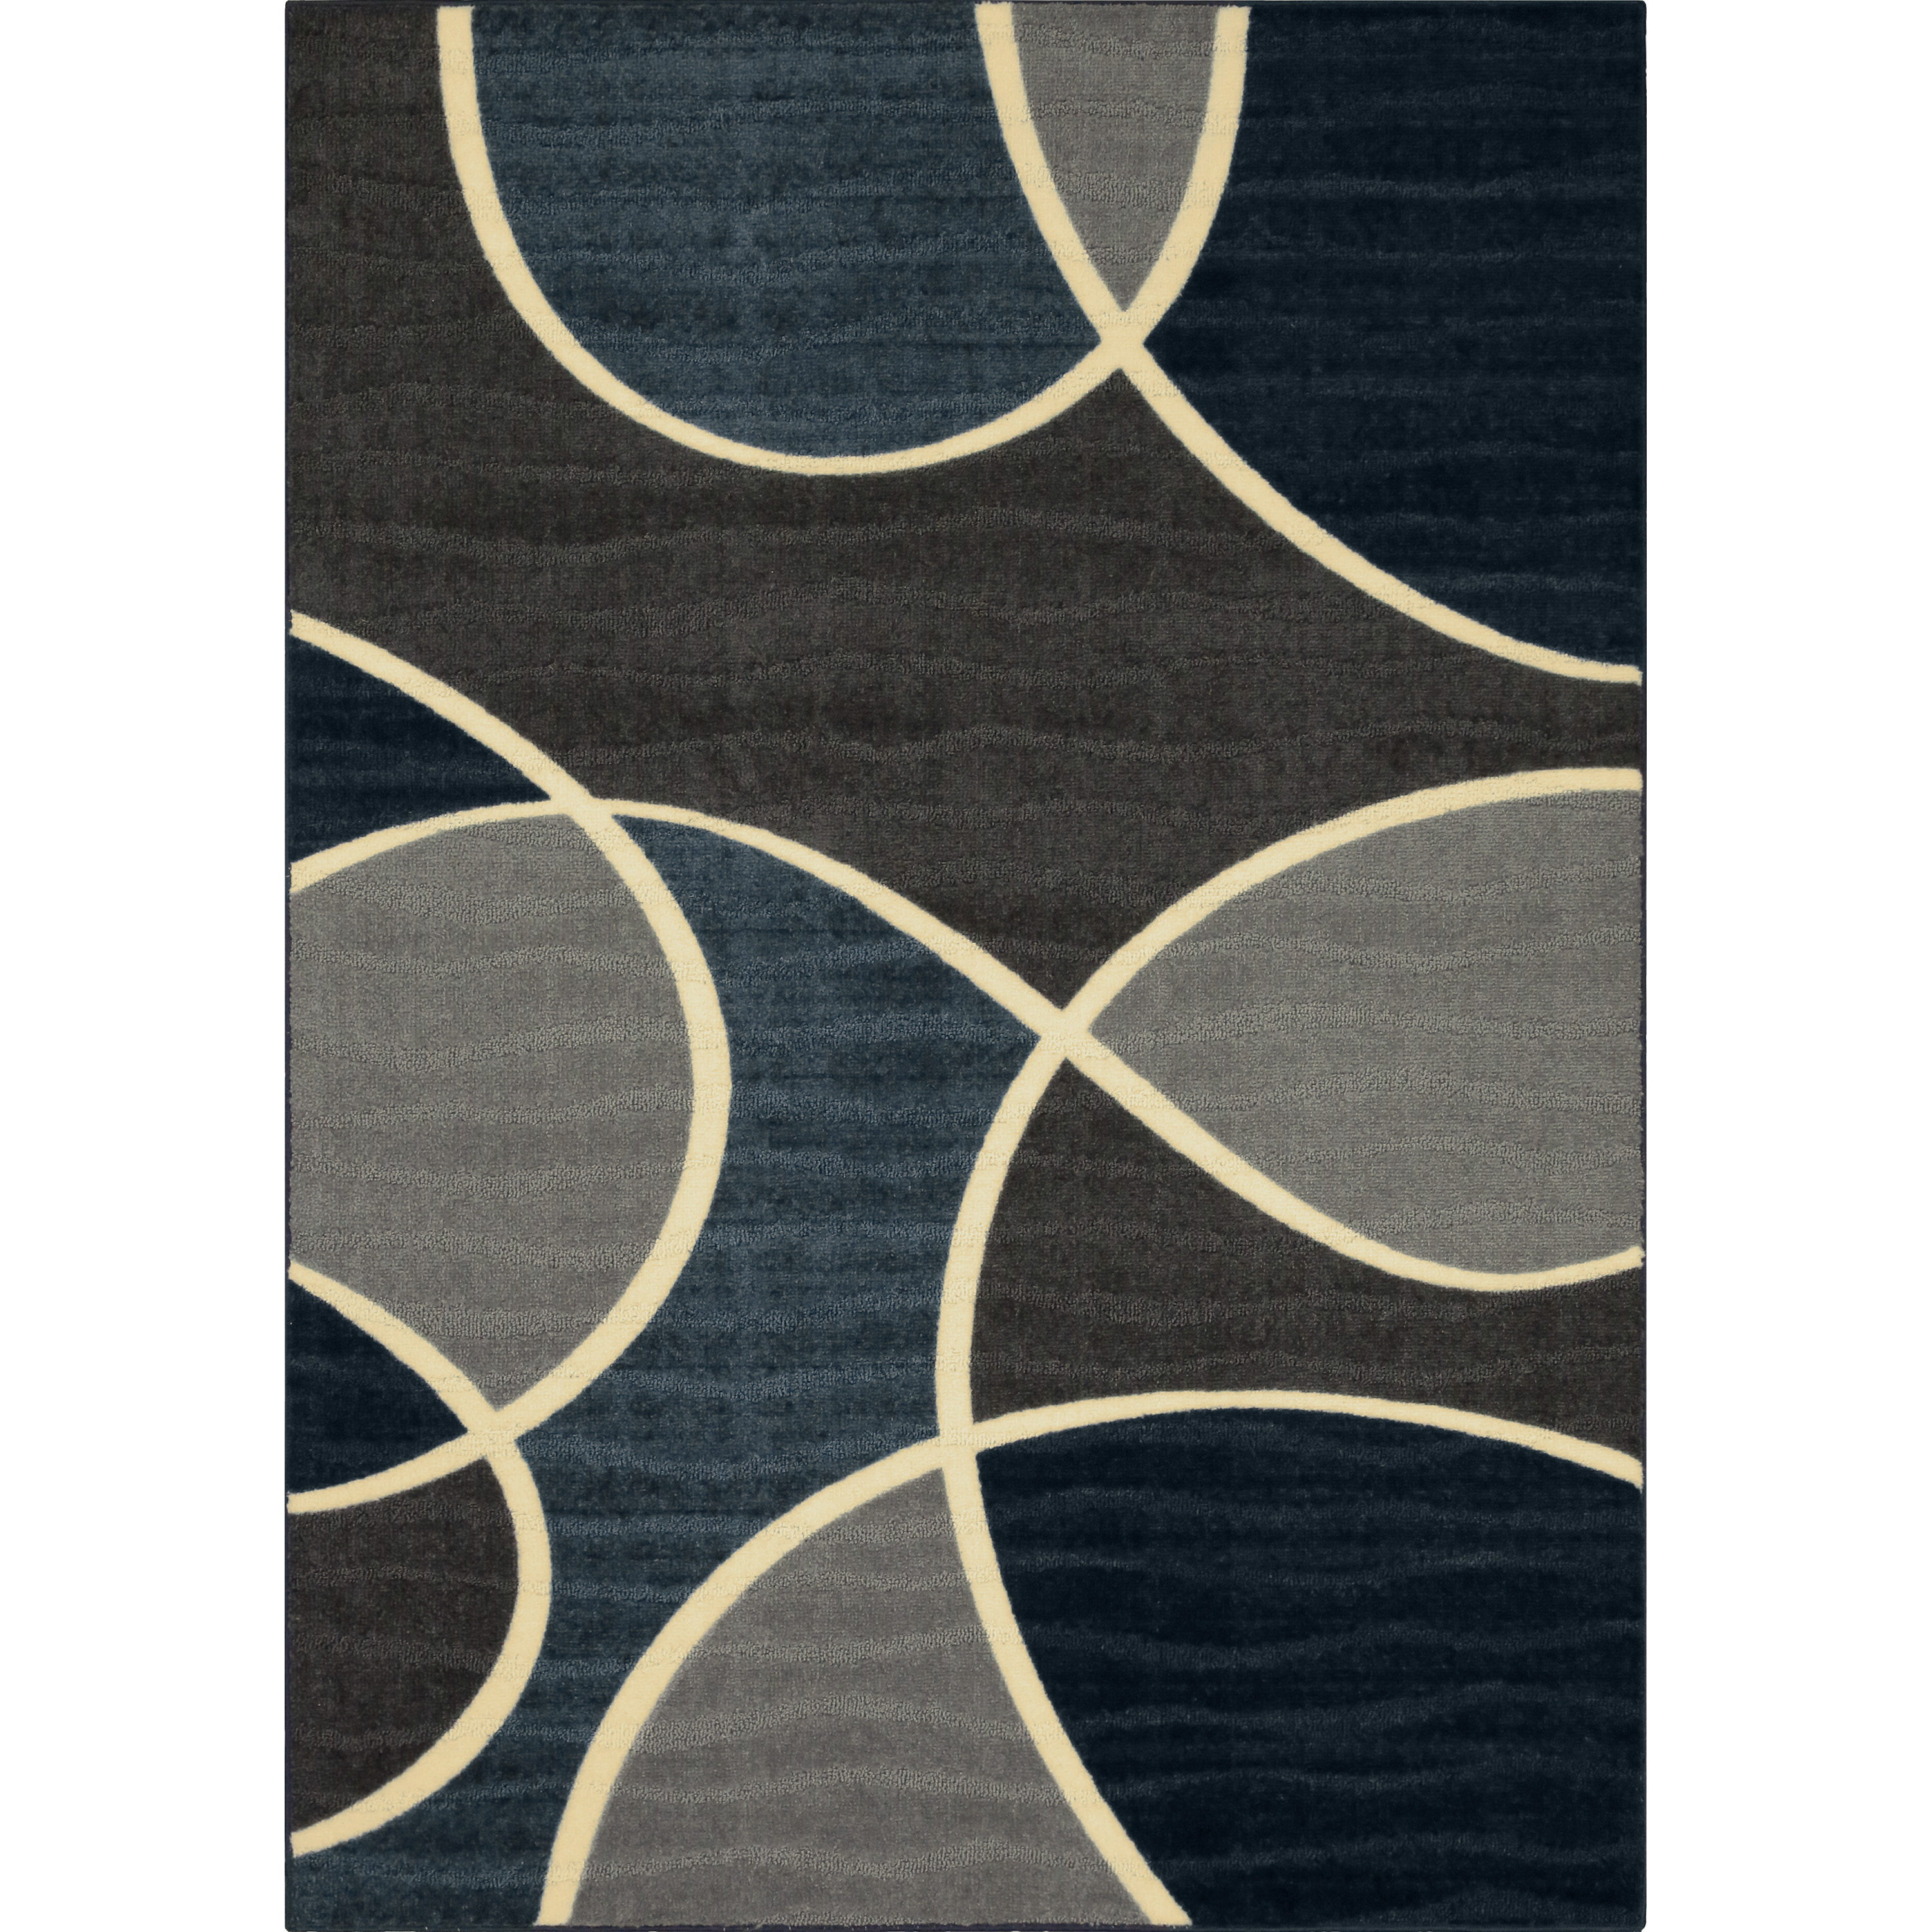 Better Homes & Gardens Geo Waves Textured Print Area Rug or Runner, Multiple Sizes and Colors by Maples Industries, Inc.